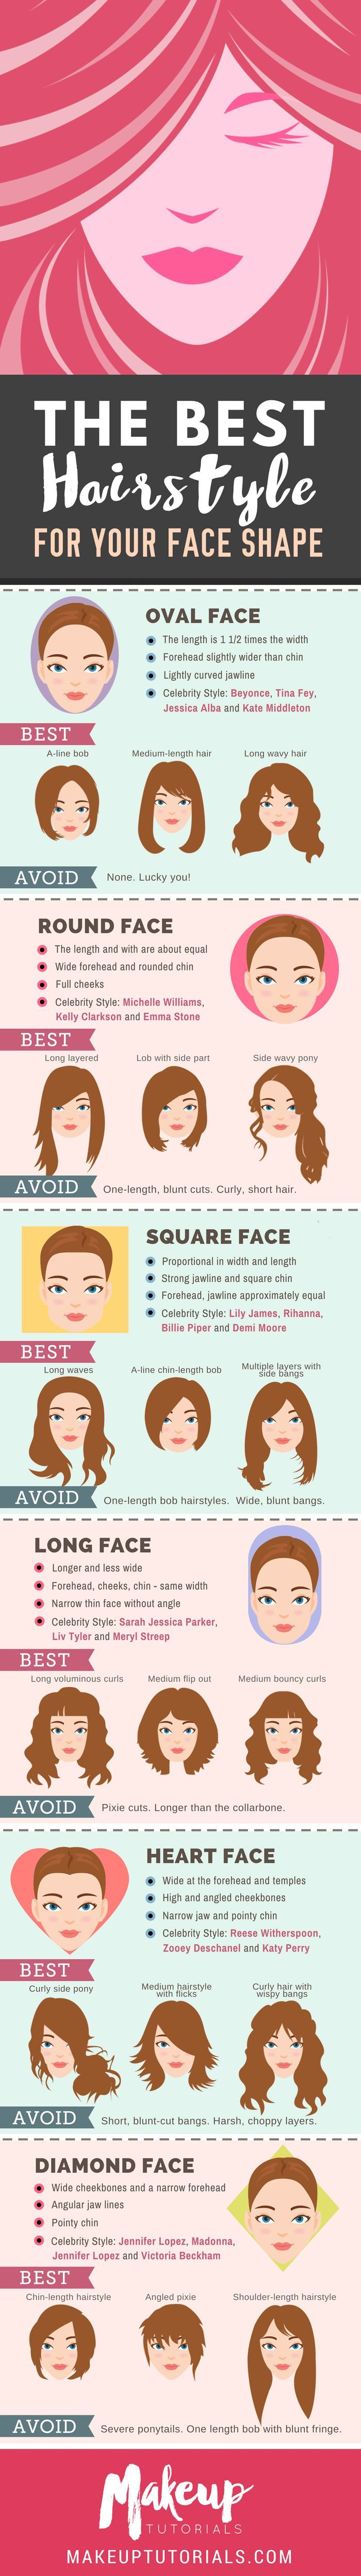 Hairstyles For Long Hair  The Ultimate Hairstyle Guide For Your